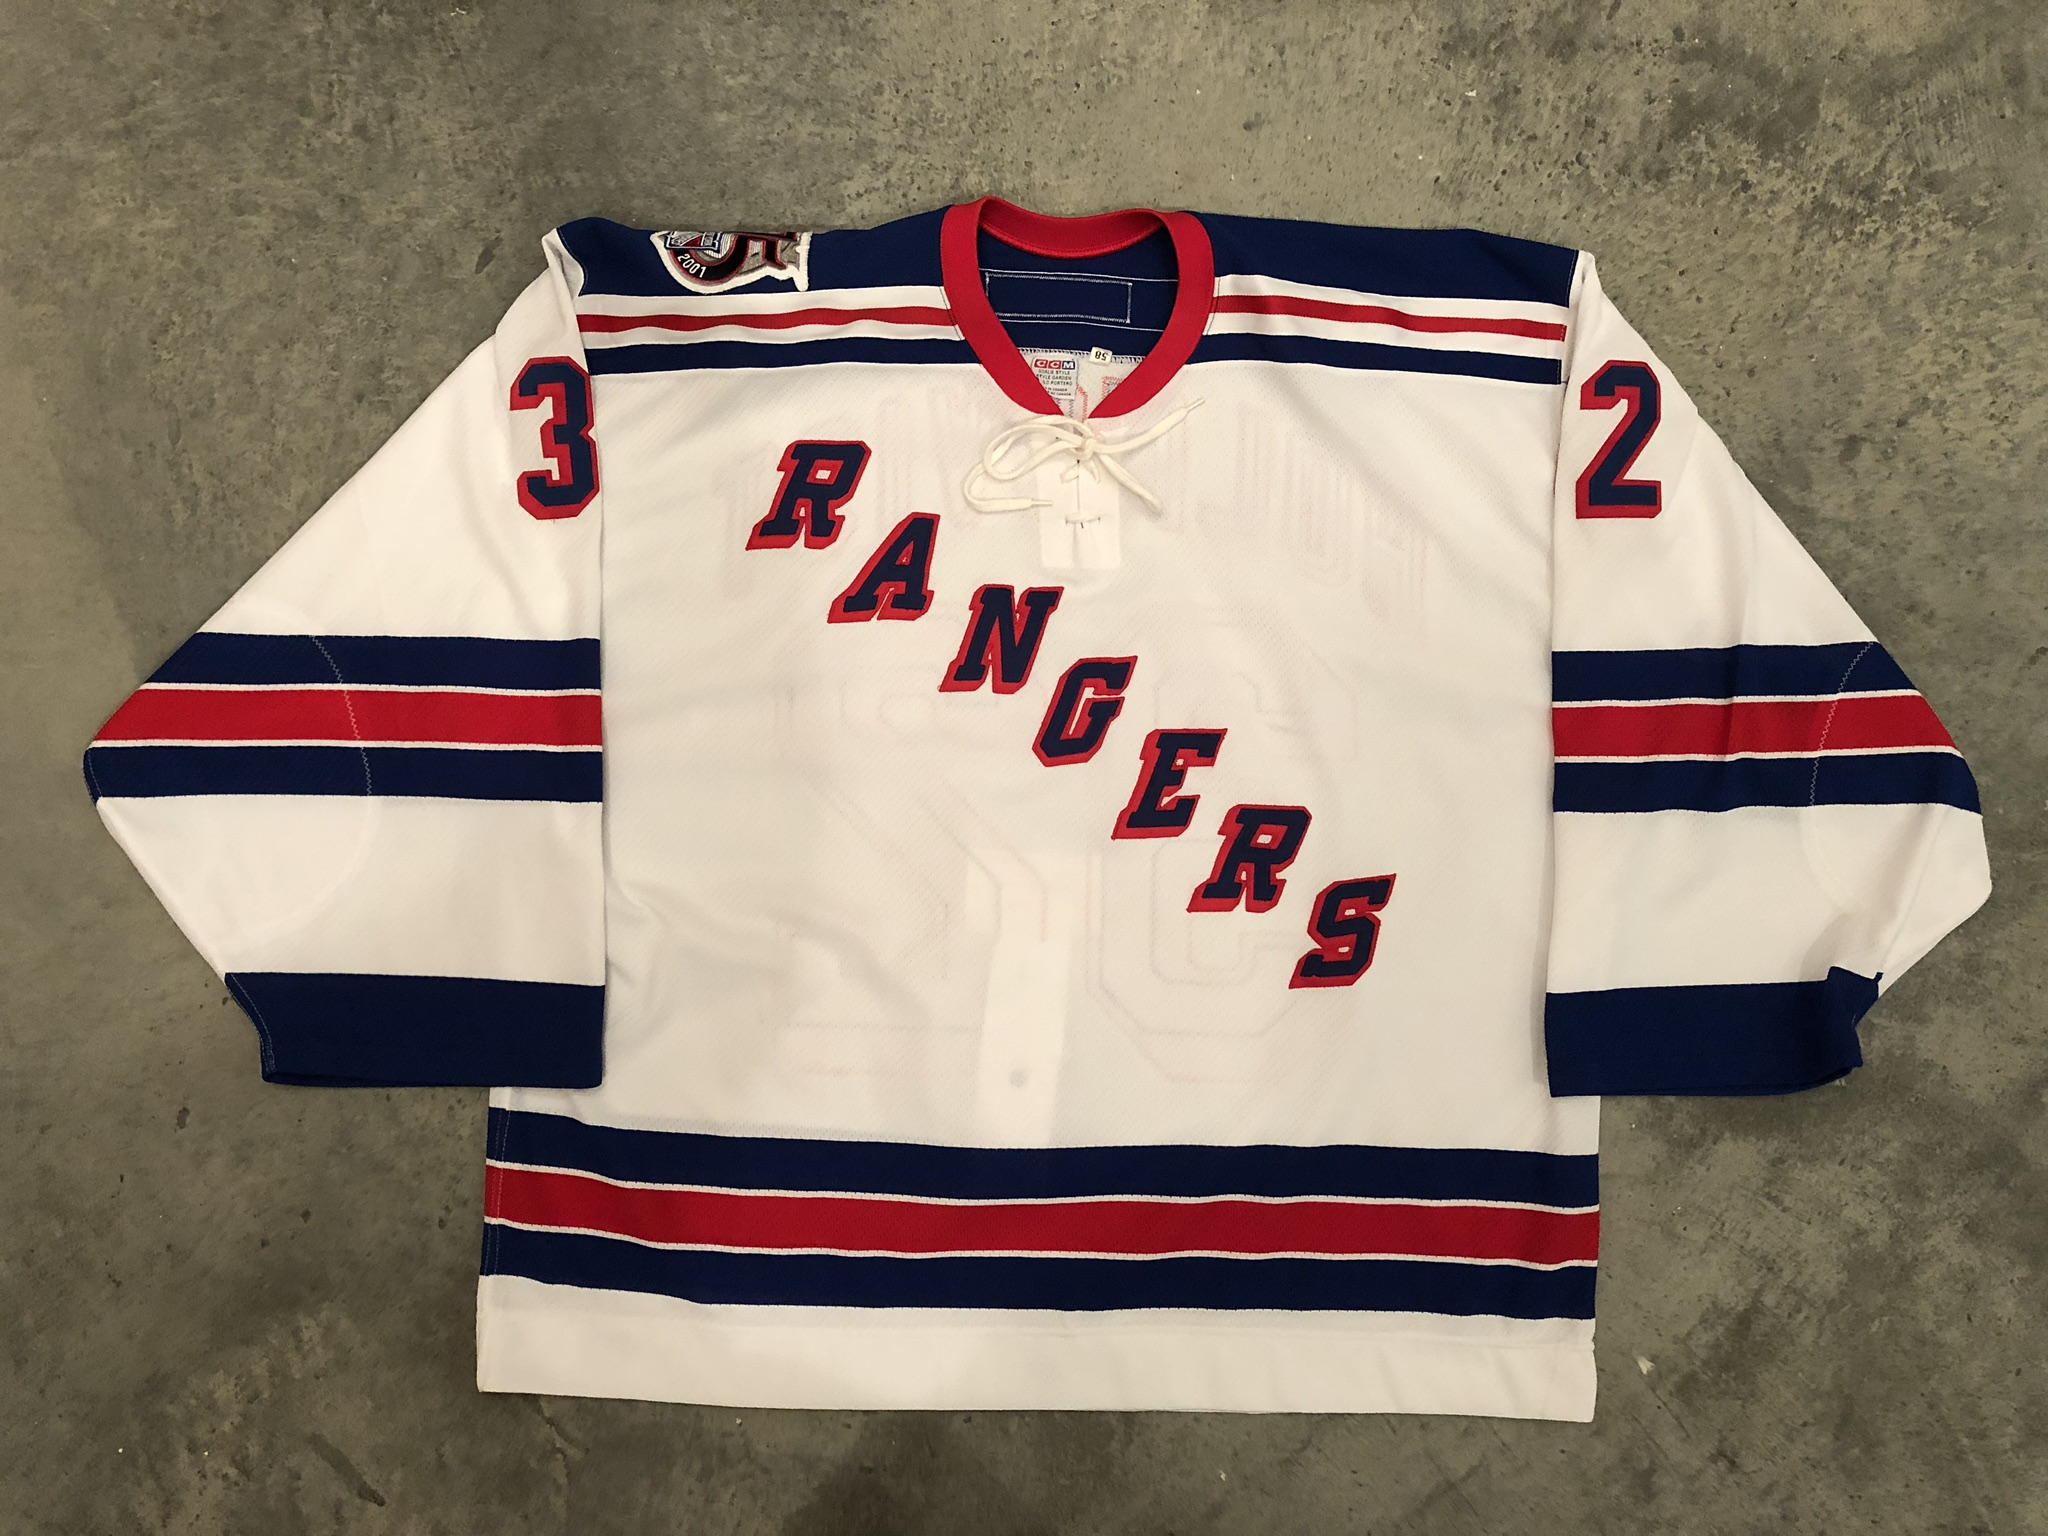 2000-01 Johan Holmqvist game worn home jersey with the Ragners 75th anniversary patch